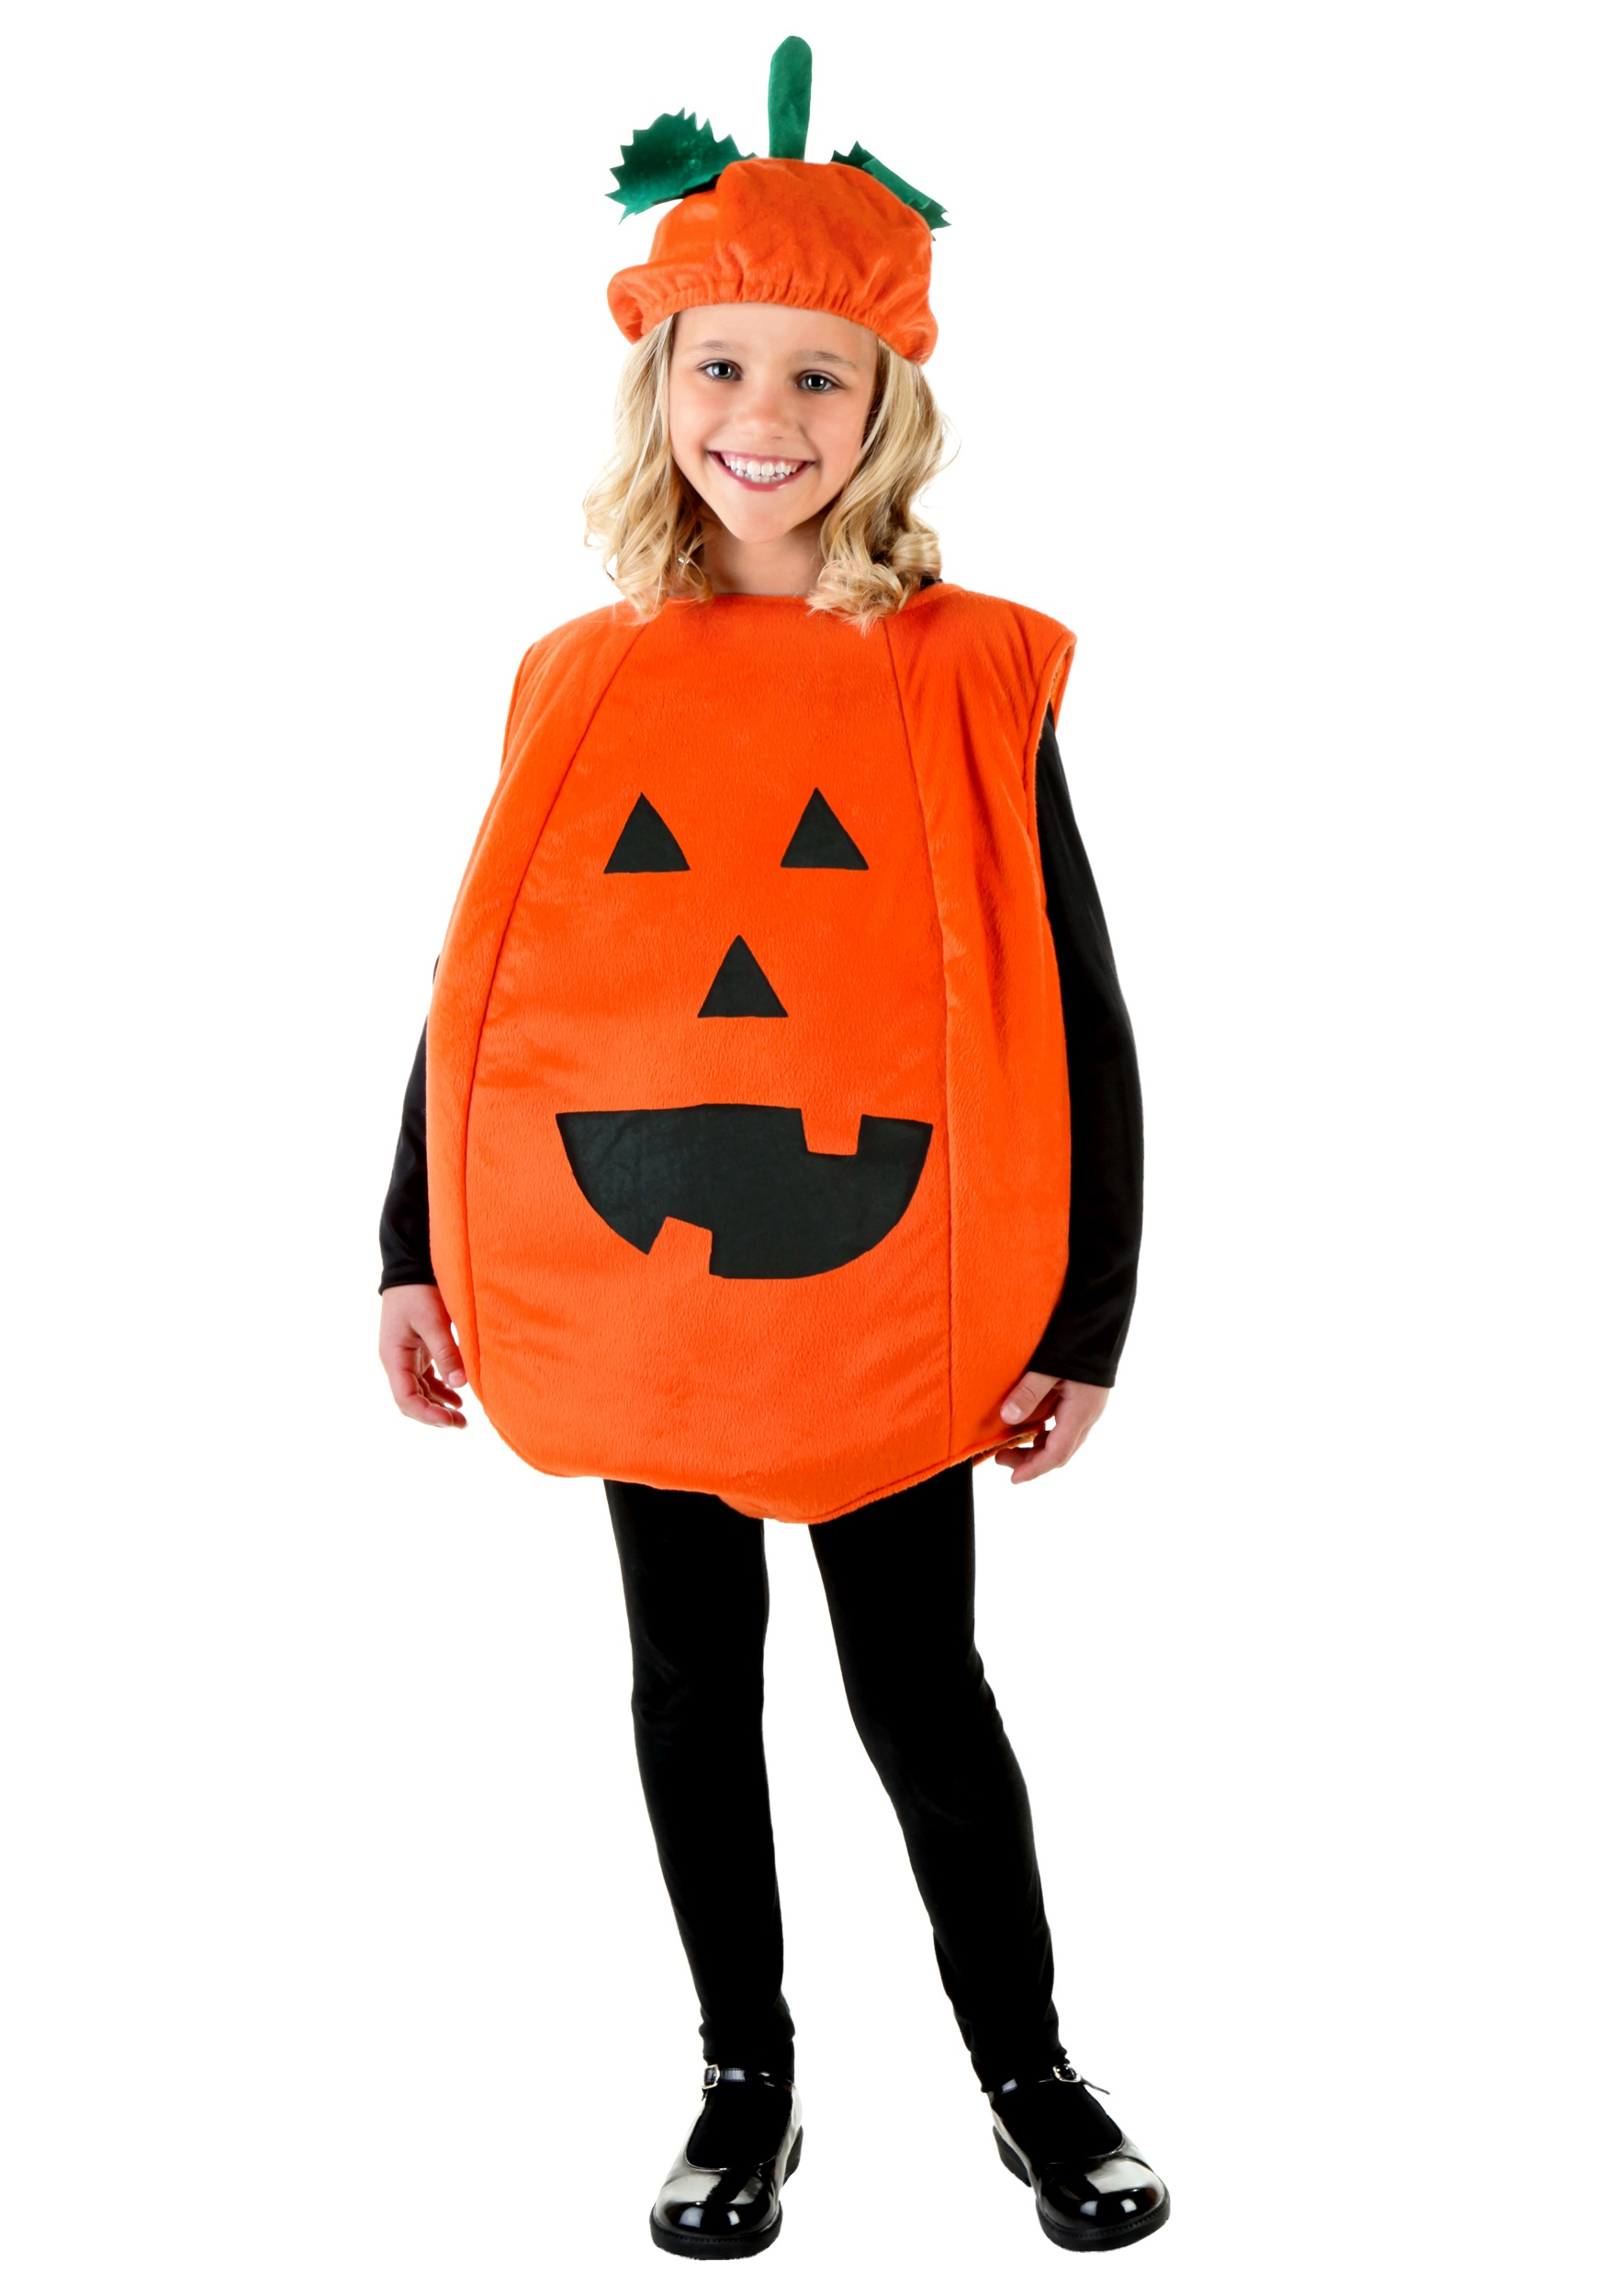 Natural Child Pumpkin Costume Kids Pumpkin Costume Baby Pumpkin Costume Pattern Free Baby Pumpkin Costume 12 Months baby Baby Pumpkin Costume